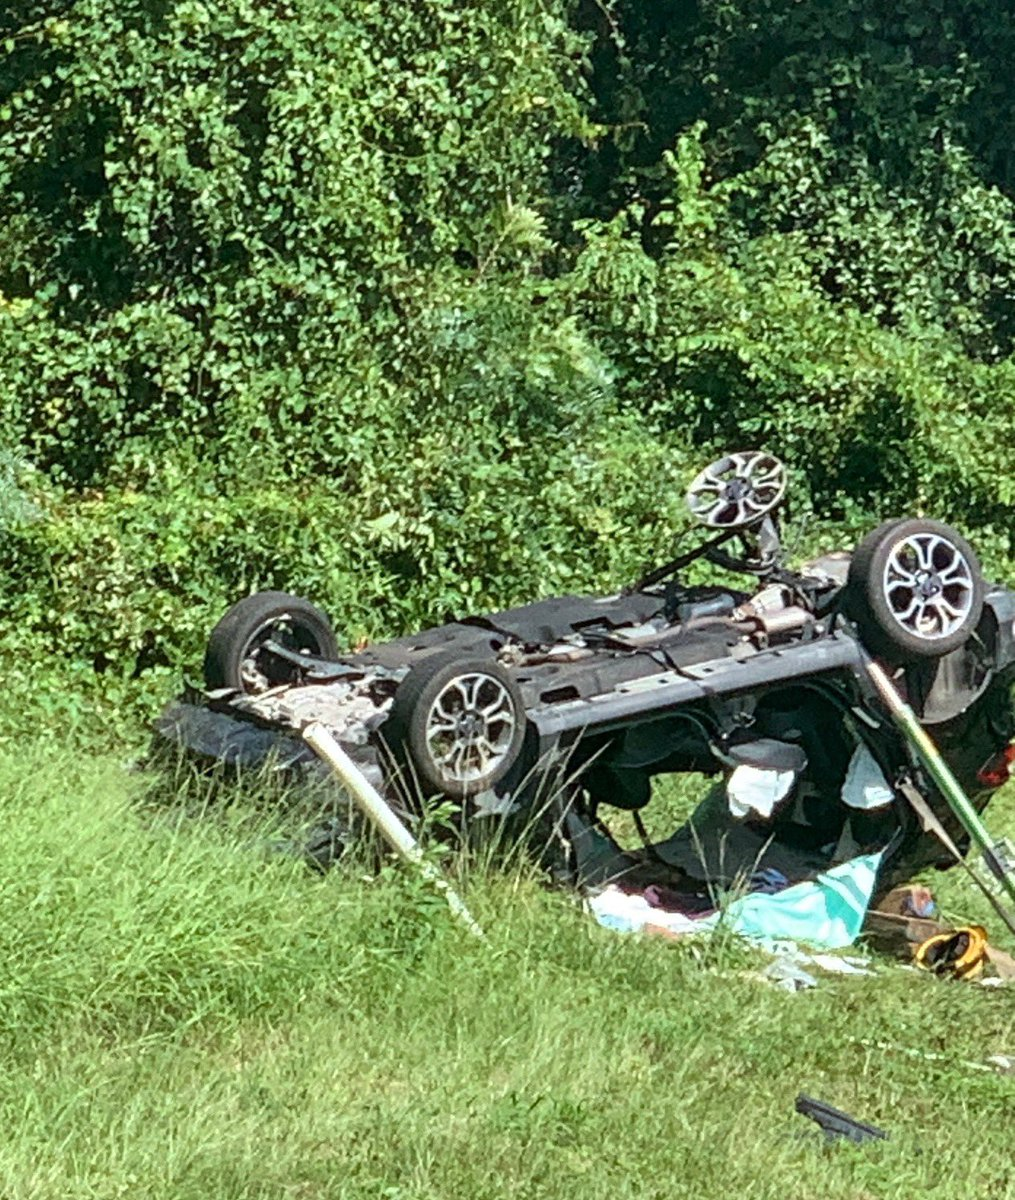 Update to the I-75 crash. All patients have been extricated from the vehicles, stabilized, and transported for further treatment. The cause of the accident is under investigation by FHP. @GFR1882 would like to remind everyone to drive safe this weekend as the weather worsens.